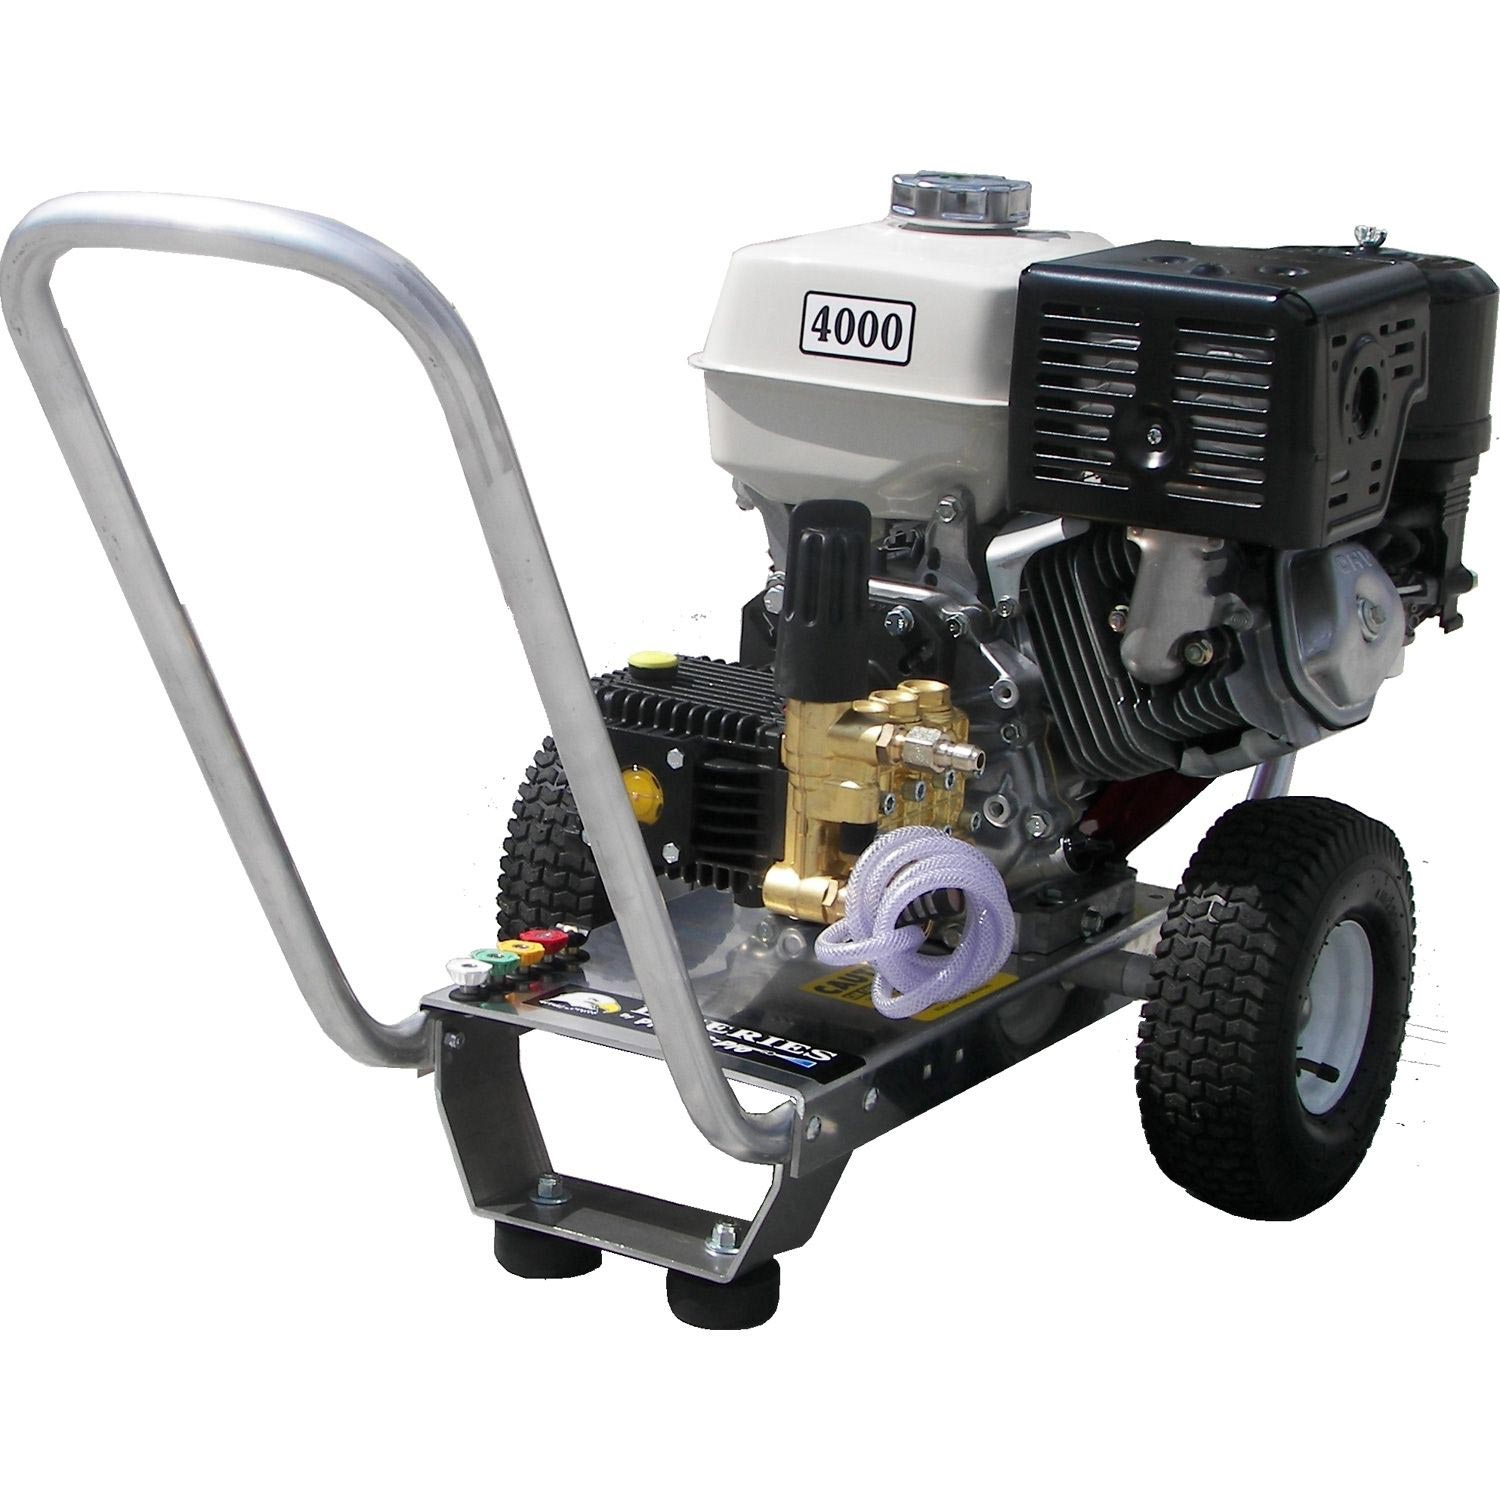 Pressure Pro PPS3030HCI 3.0 gpm 3000 psi GC190 Honda Engine Cat 4PPX Pump Pressure Washer FREE Shipping